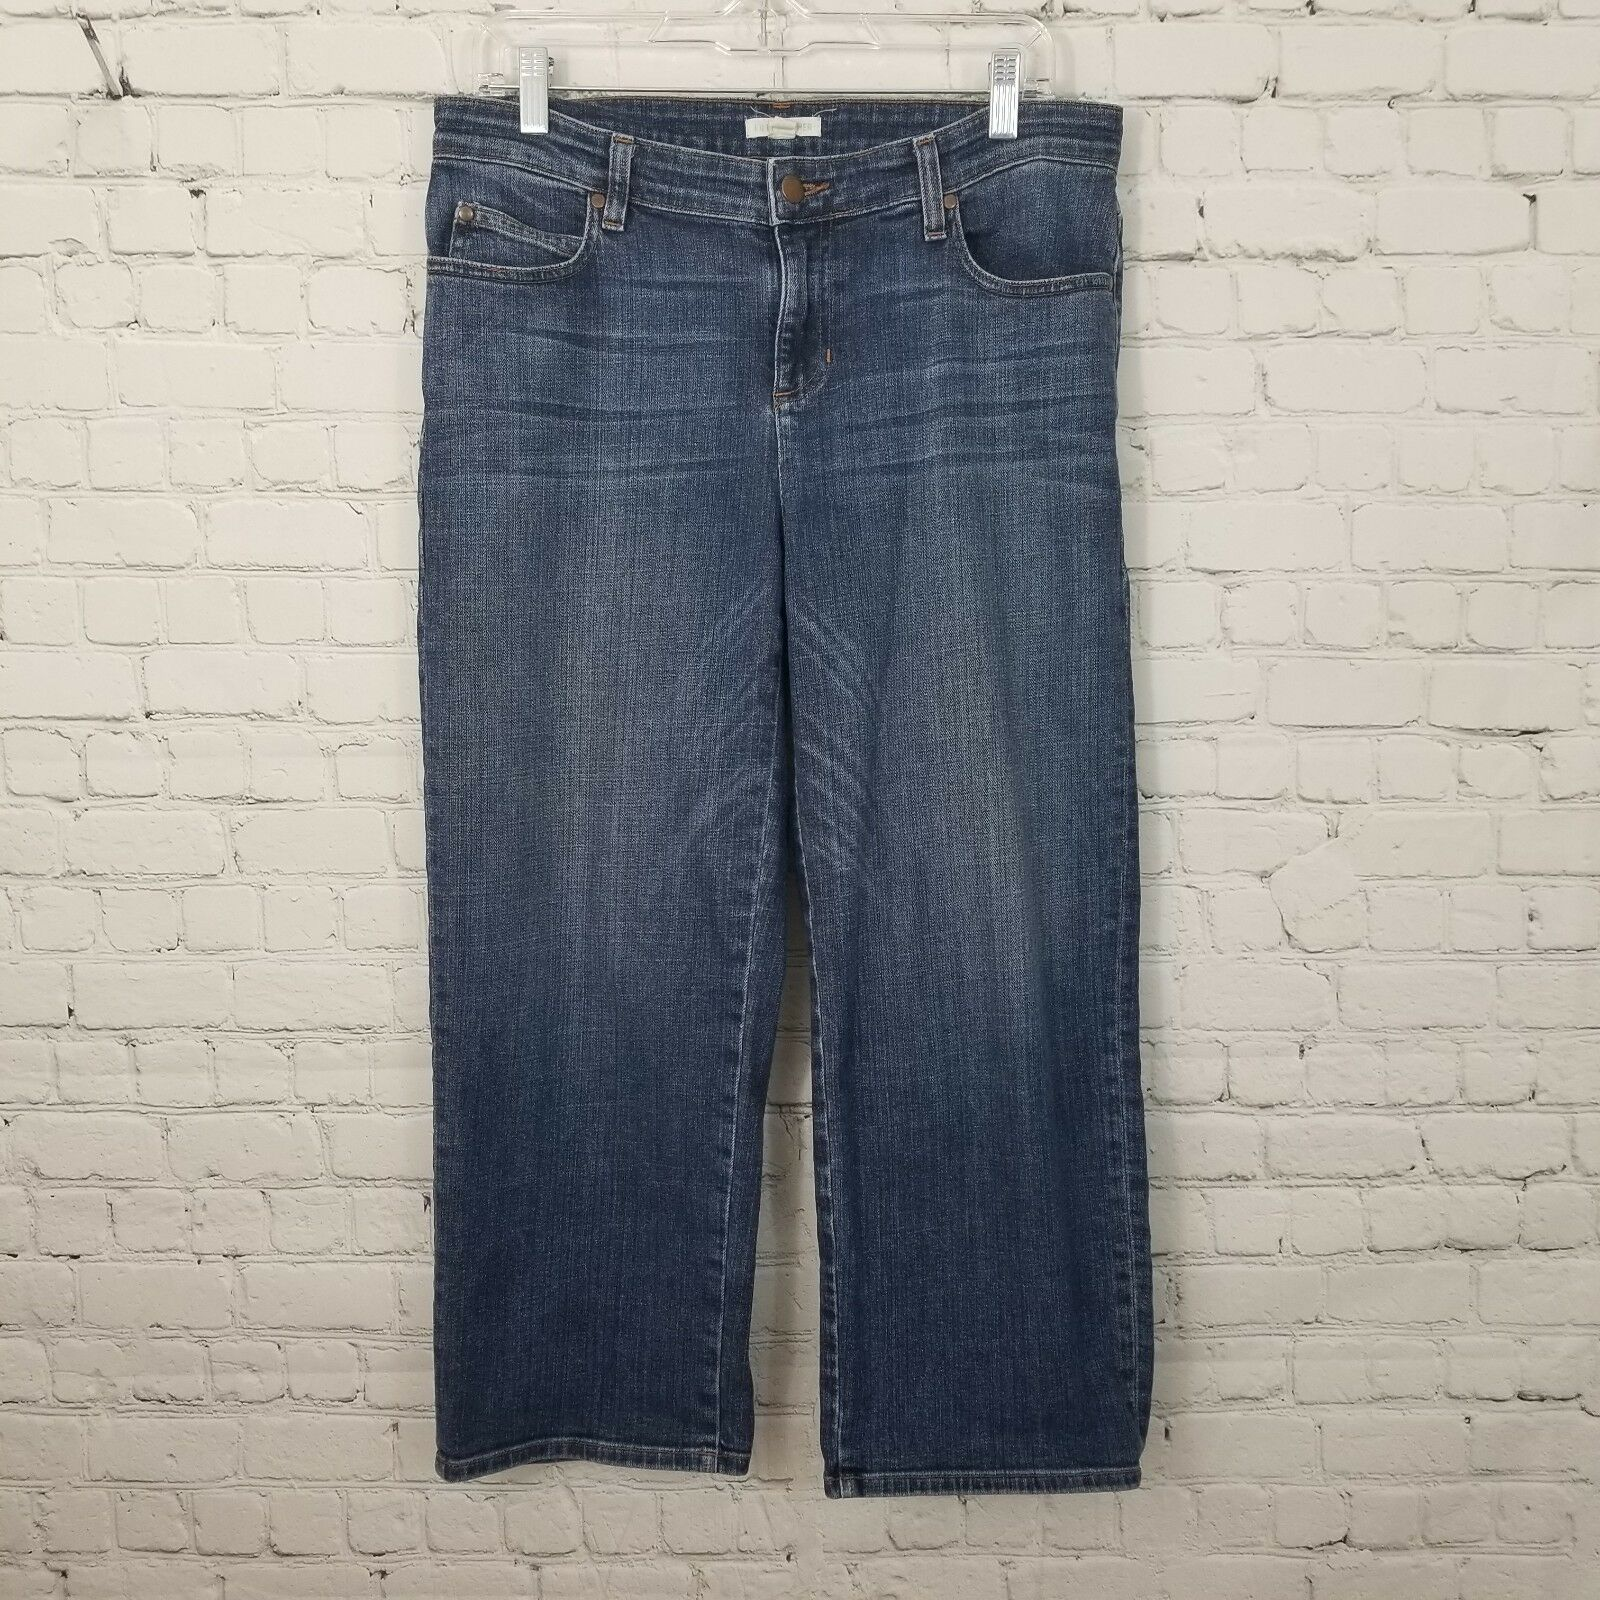 Eileen Fisher Cropped Jeans Size 8 bluee